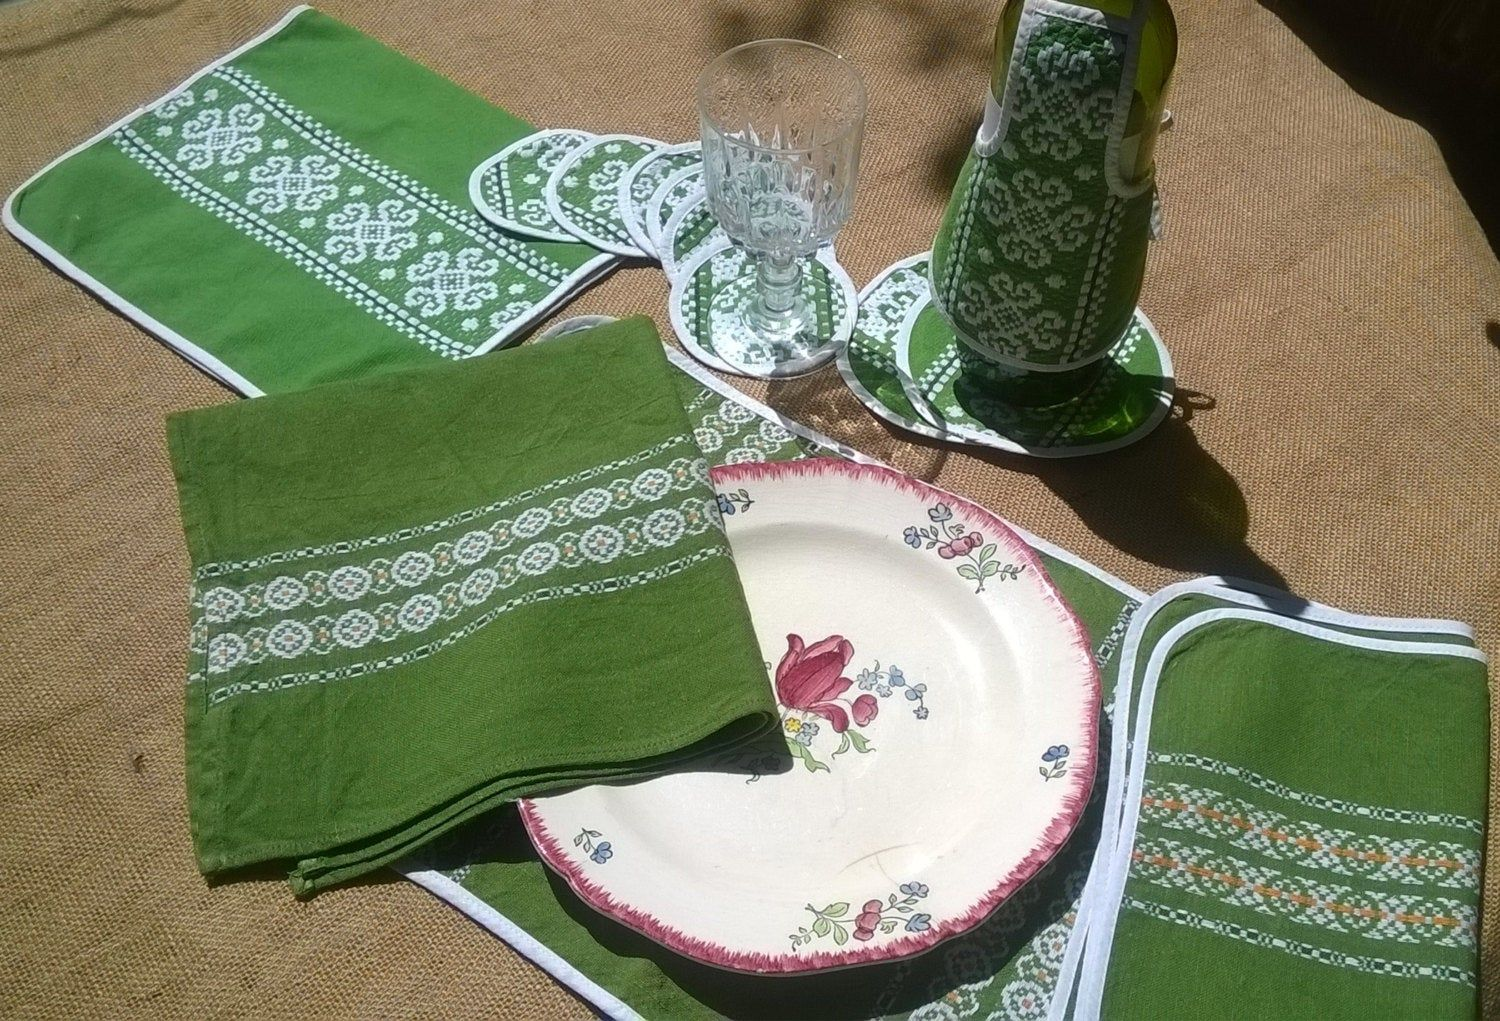 13 Vintage Napkins Placemats Coasters French Folk Linens Set Green Linen White Embroidered Basque Design Sophieladyde Vintage Napkins Placemats Antique Dishes